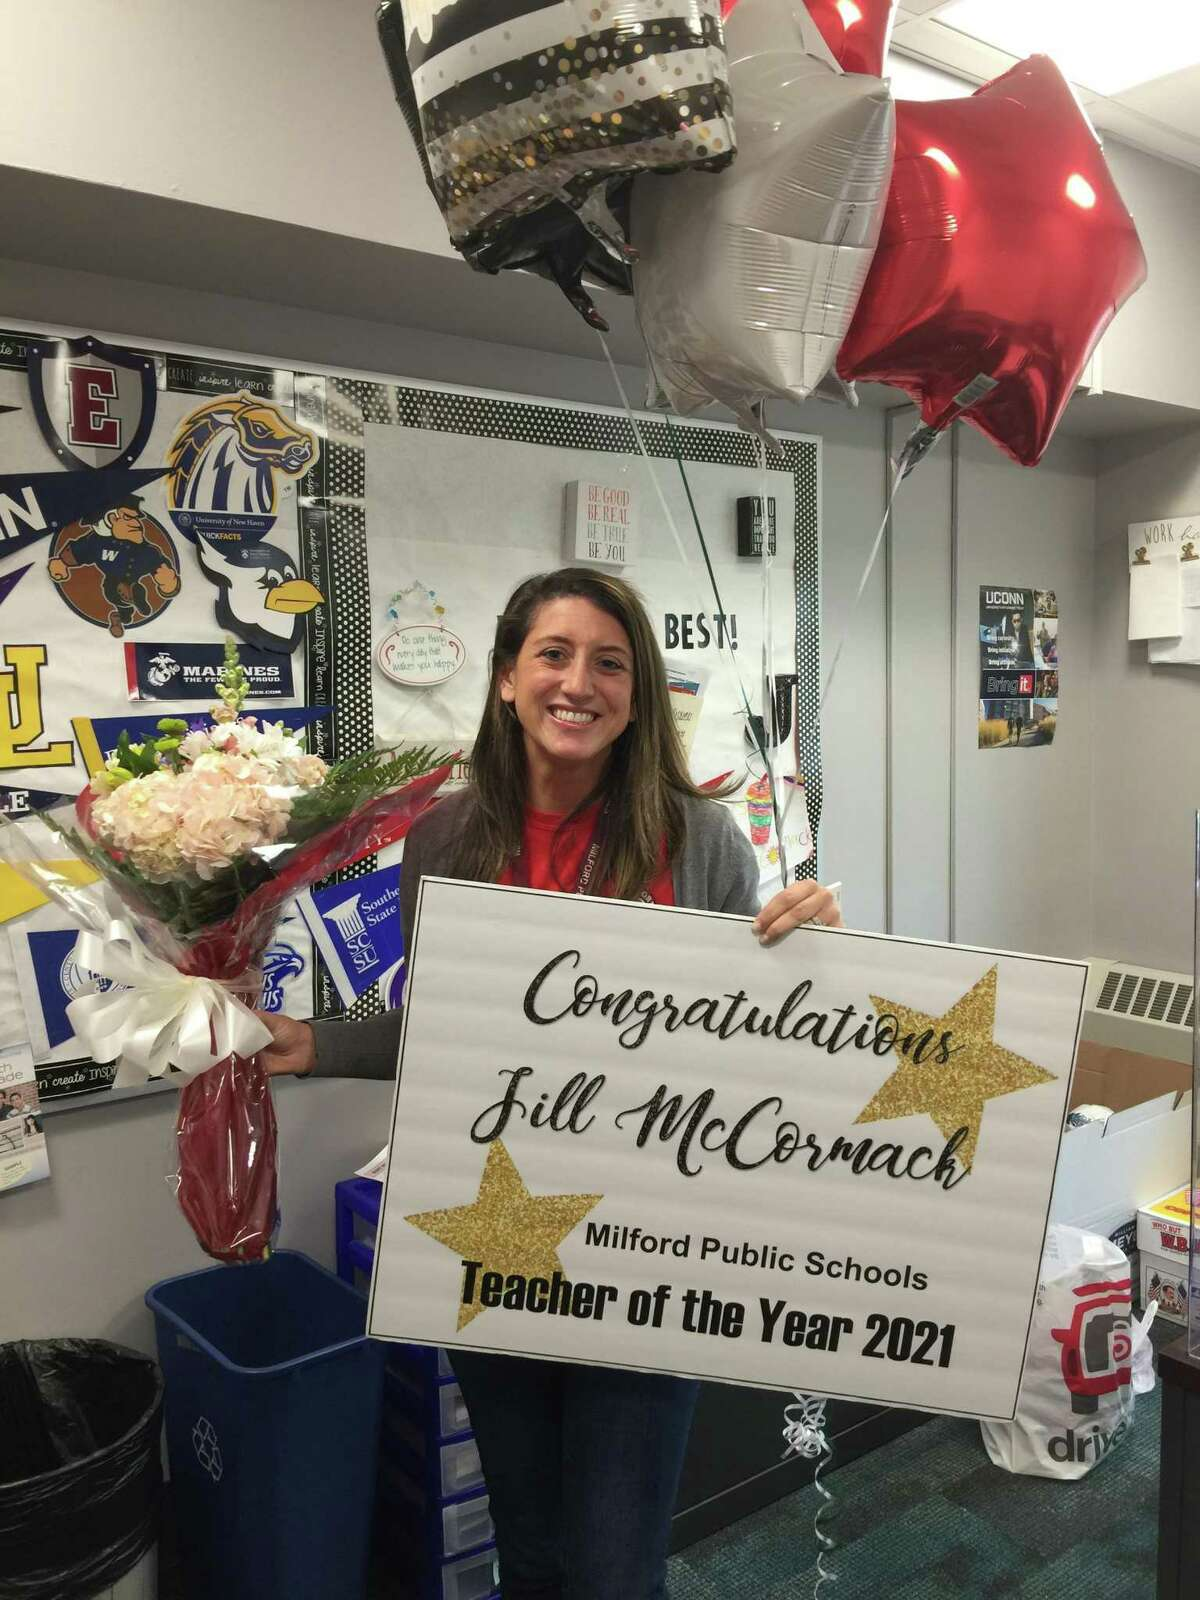 Jill McCormack is the Milford Public Schools Teacher of the Year